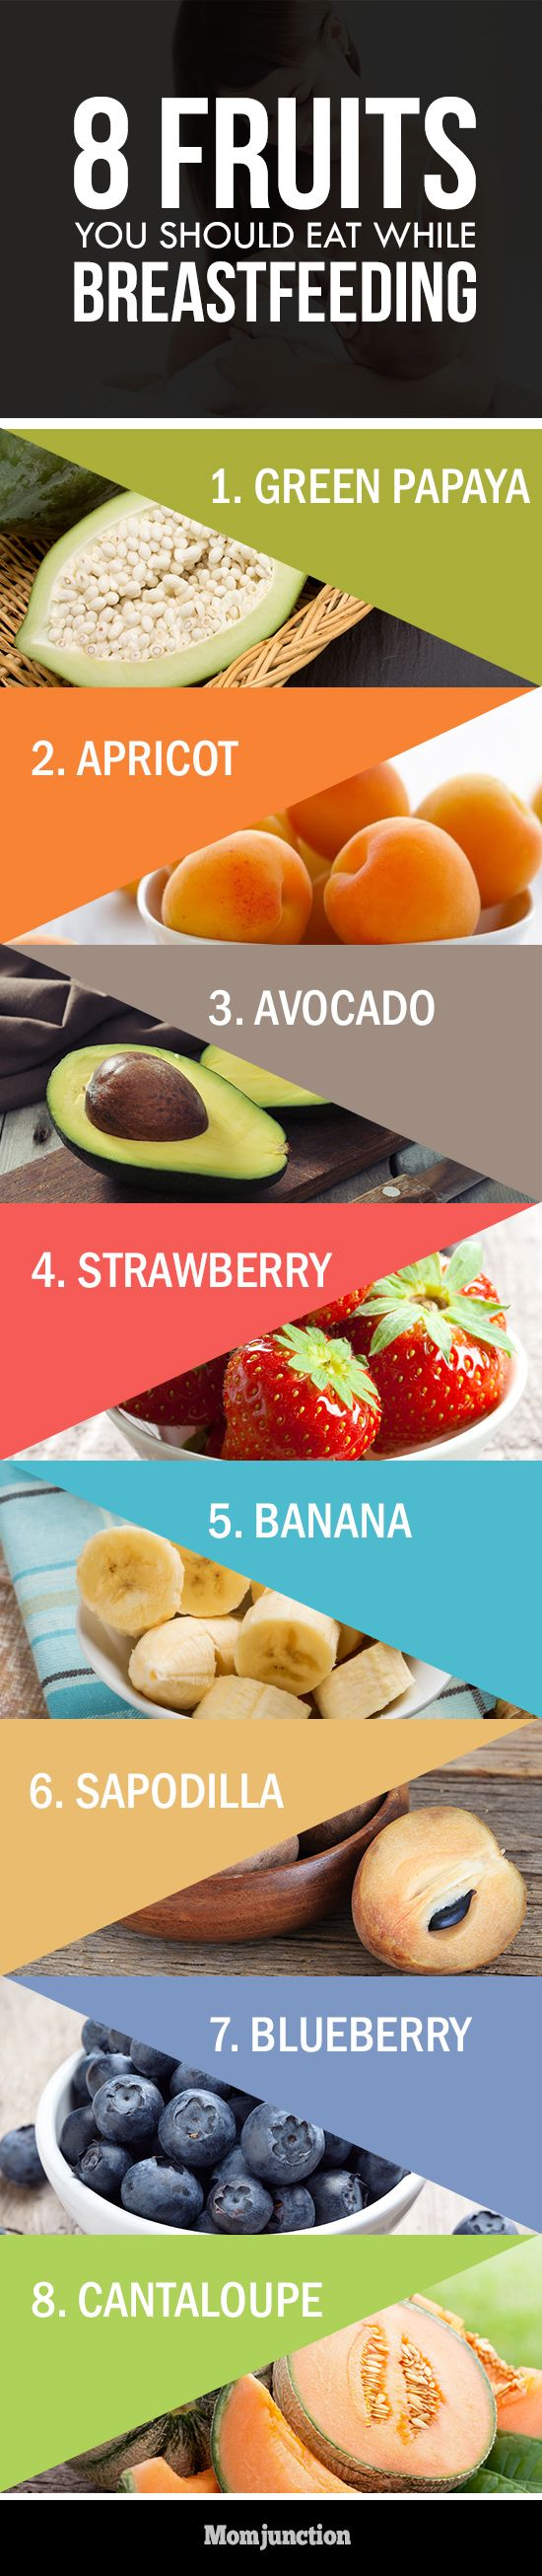 Easiest ways to lose weight quick picture 2